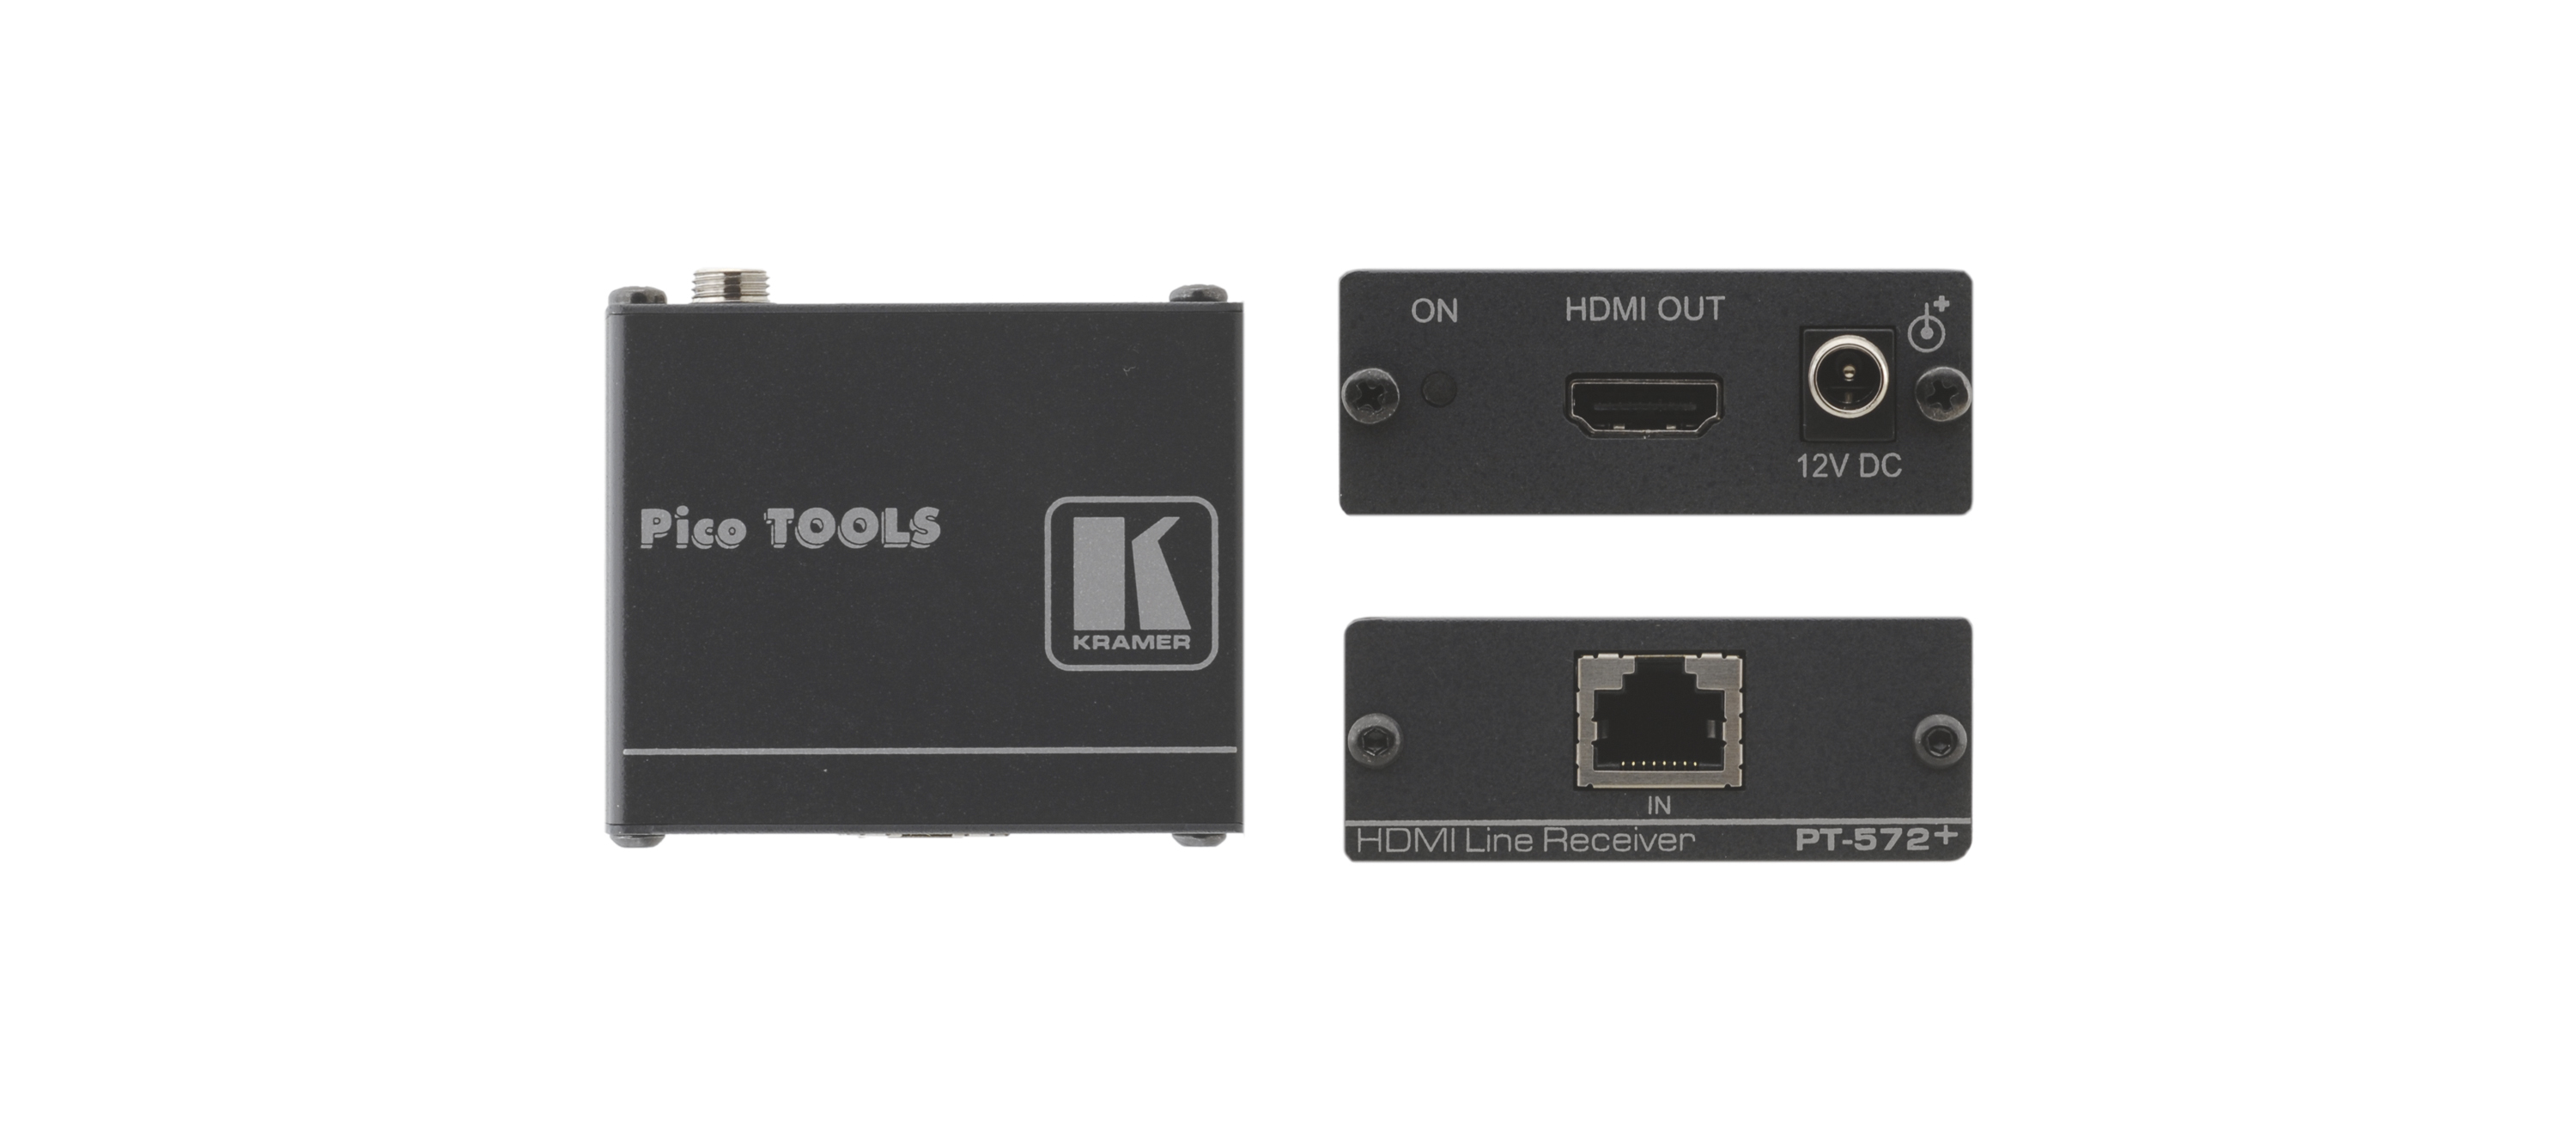 PicoTOOLS - Video/audio extender - 19 pin HDMI Type A / RJ-45 - up to 300 ft